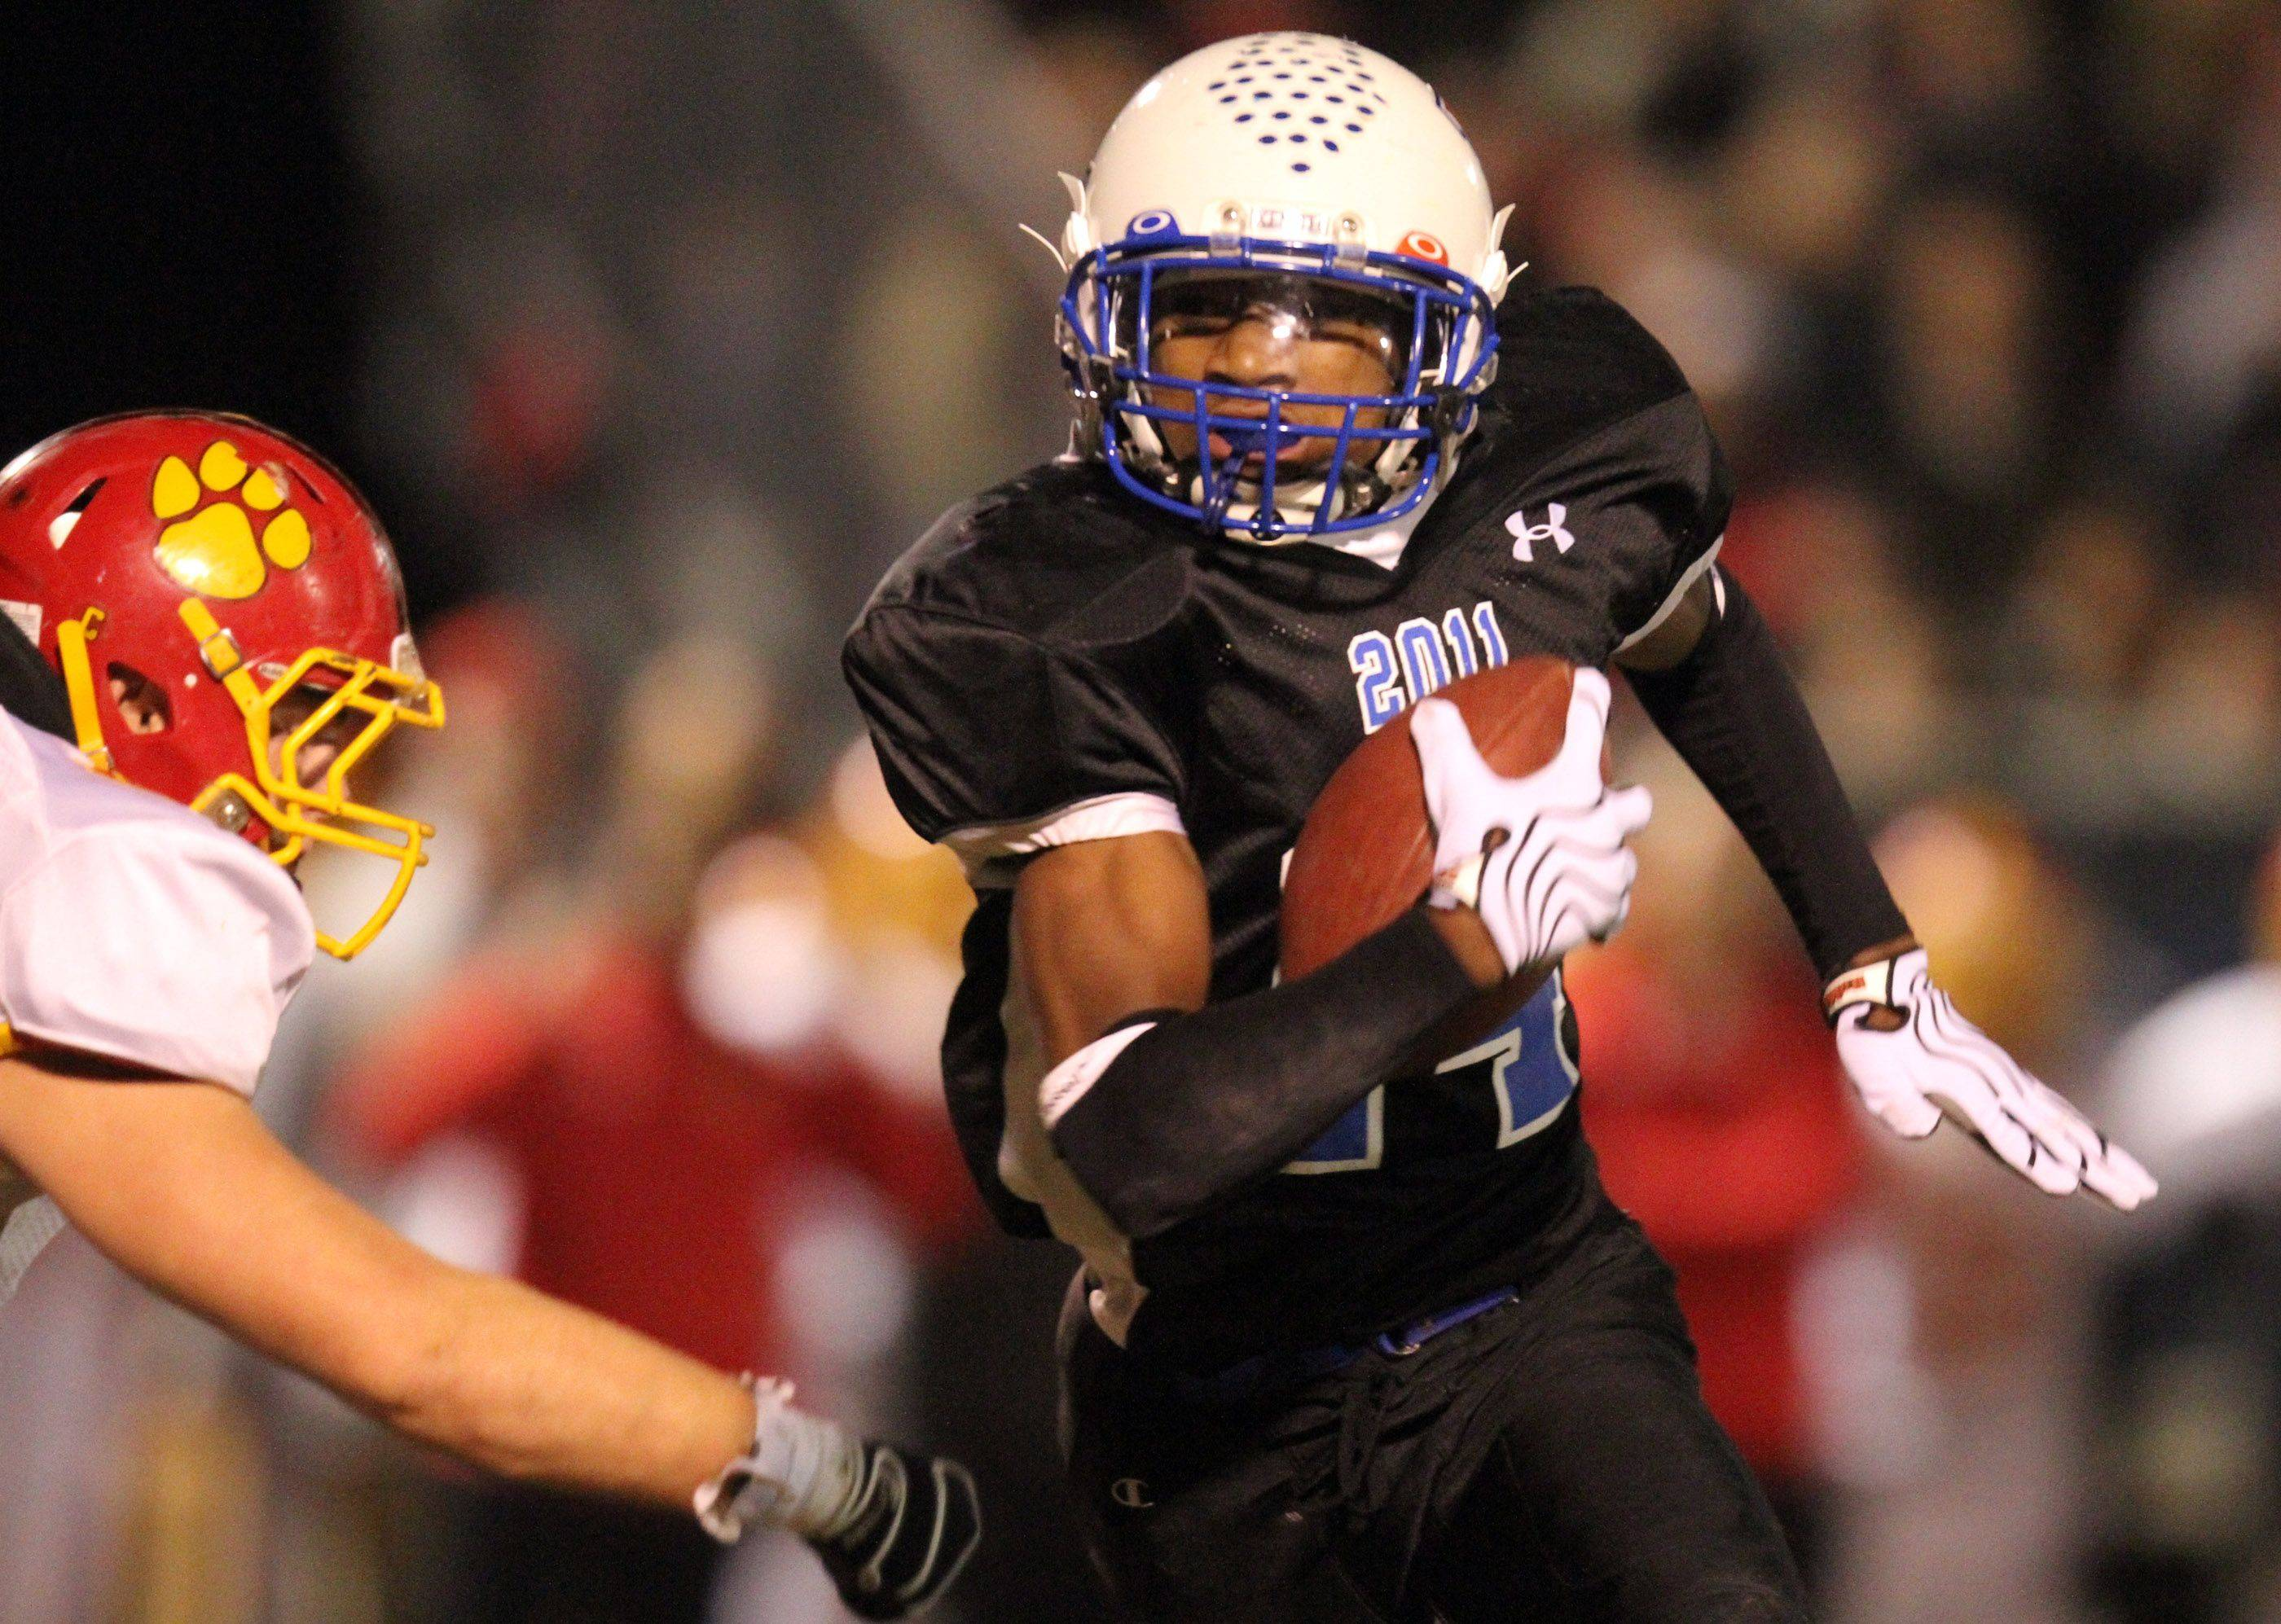 Lakes' Andrew Spencer runs the ball against Batavia during the first half at Lakes on Saturday, November 12th.